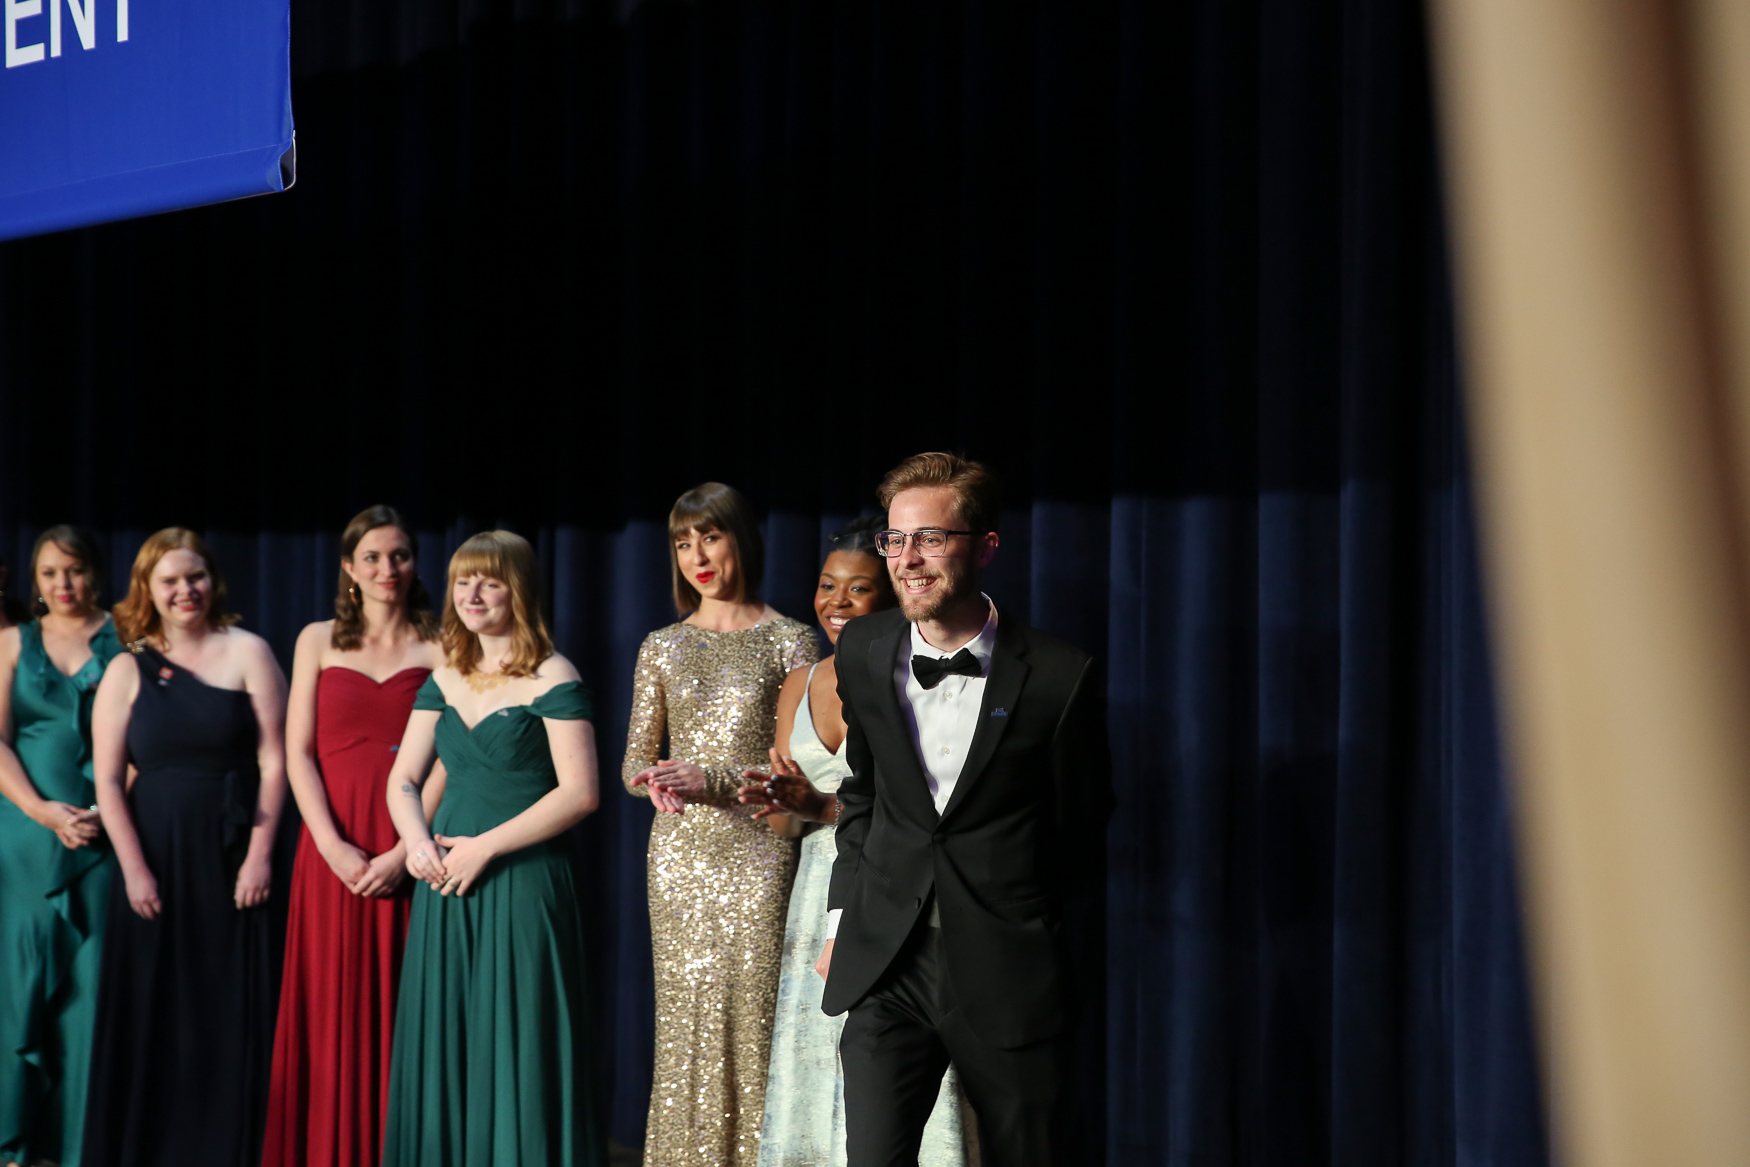 Student journalists being honored by the White House Correspondents' Association. (Amanda Andrade-Rhoades/DC Refined)